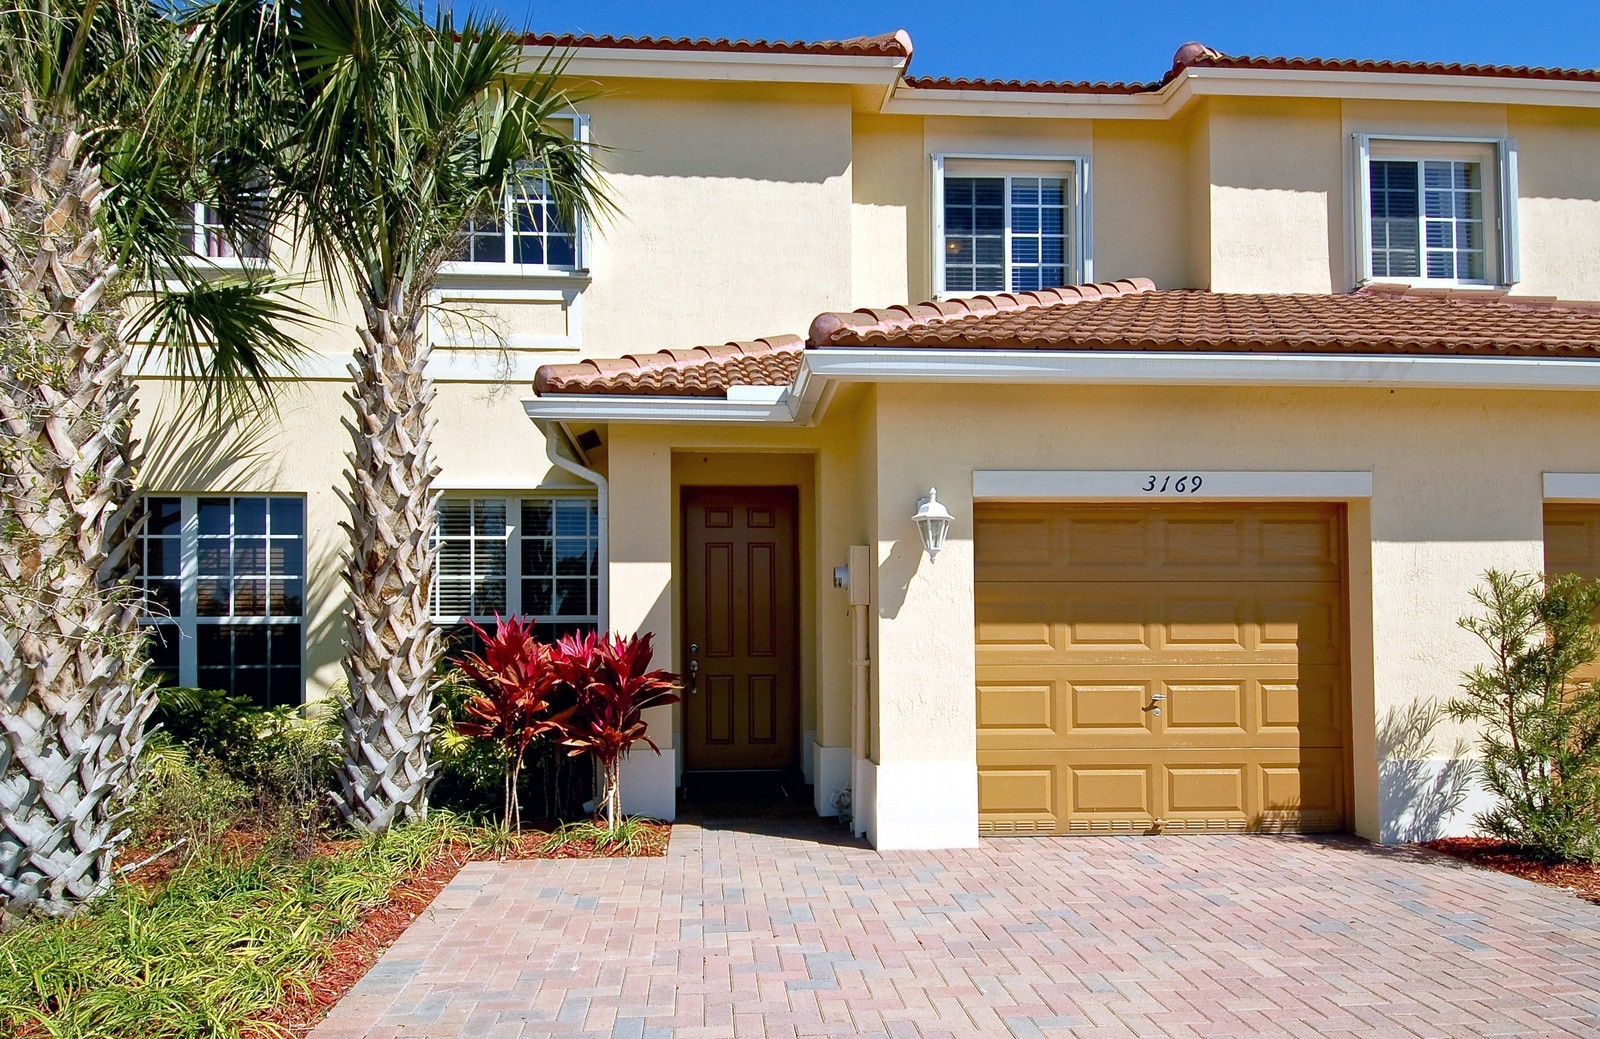 Real Estate Photography - 3169 NW 32nd St, Cayman Model, Oakland Park, FL, 33309 - Front View